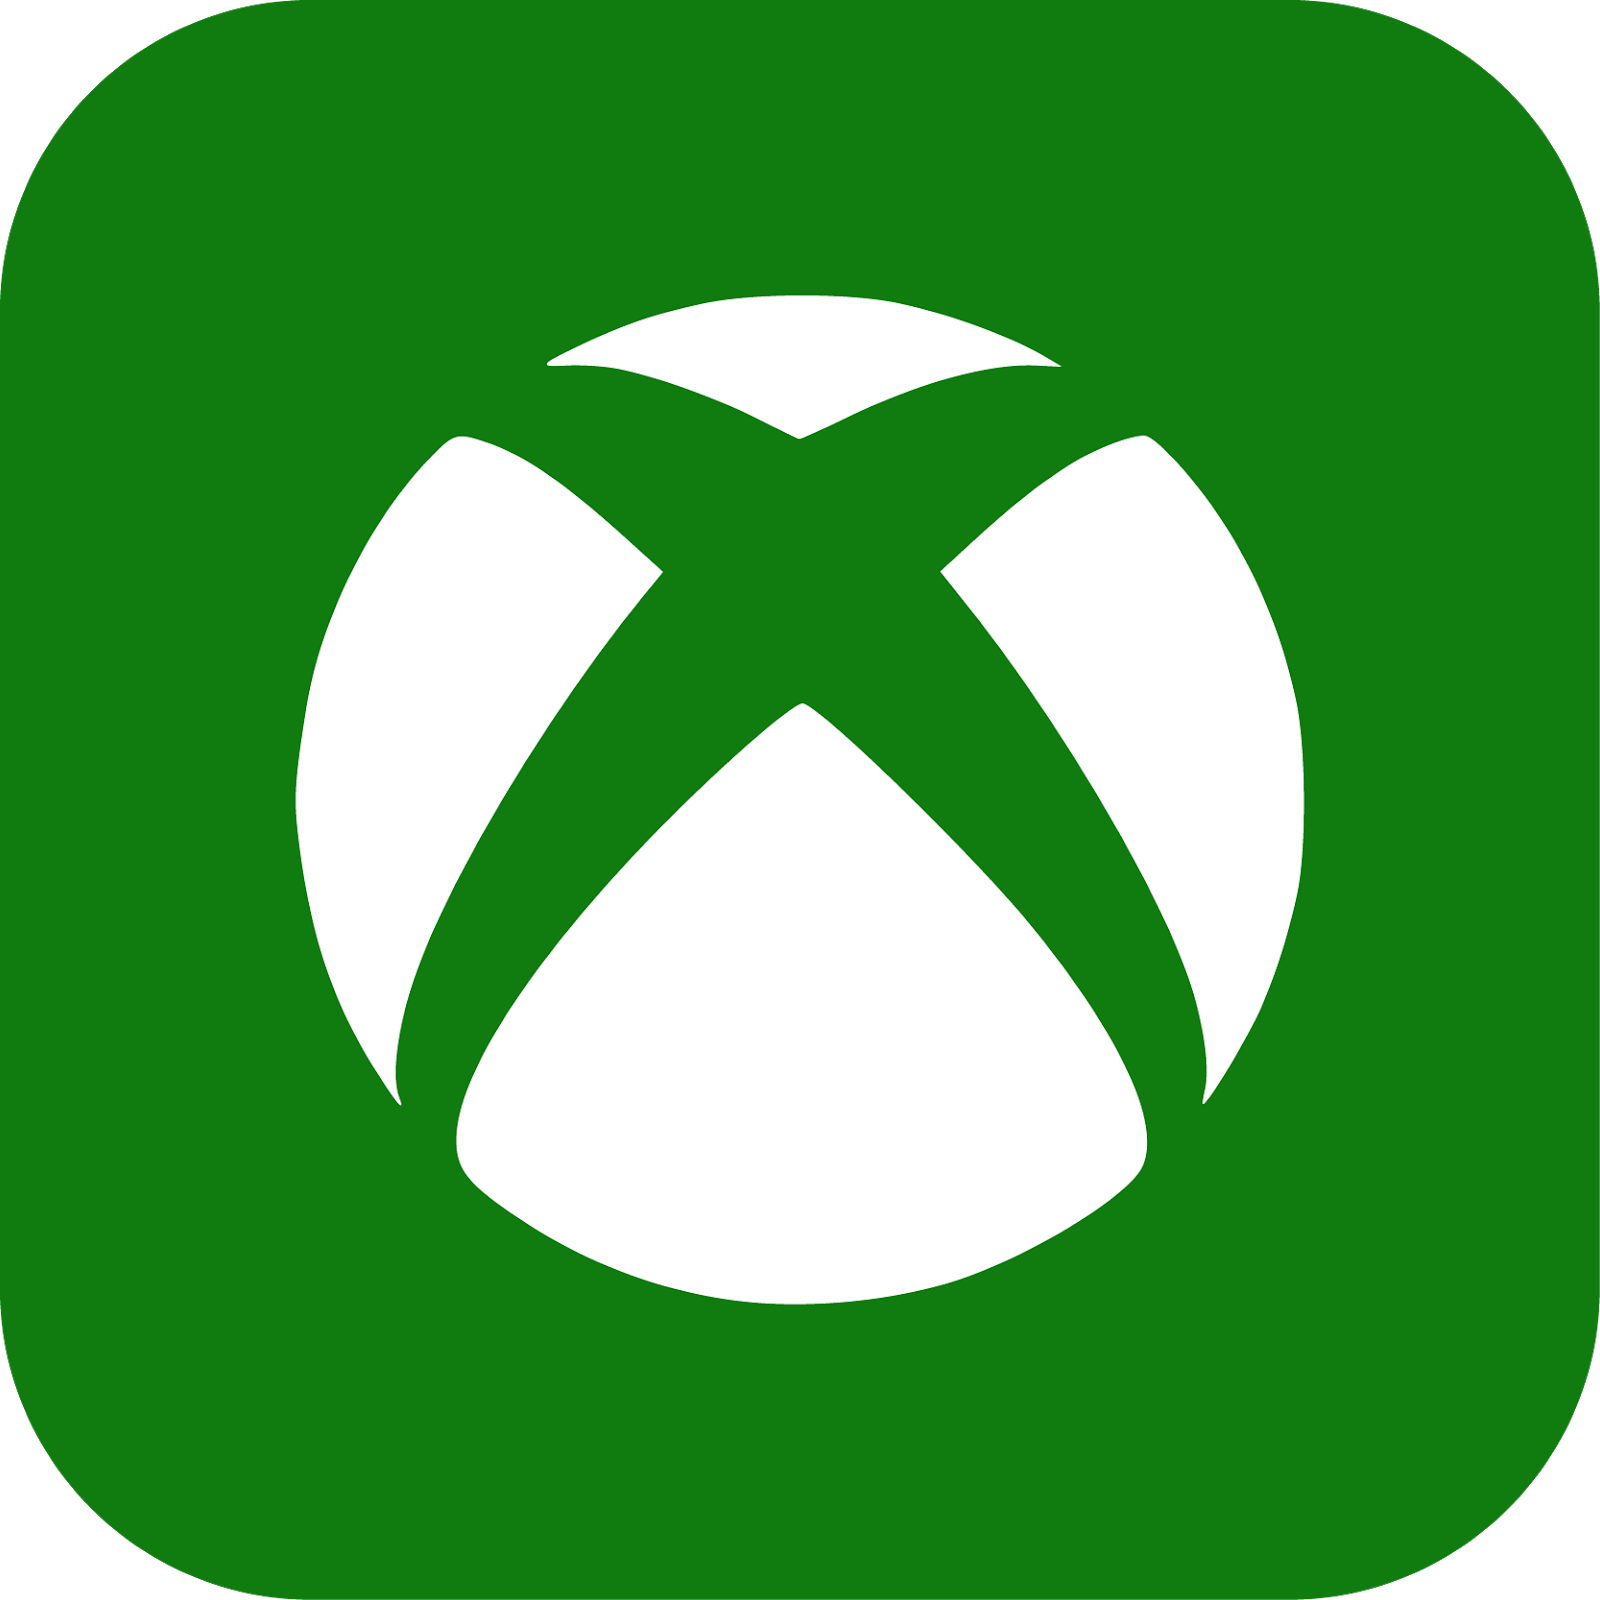 download xbox logo svg eps png psd ai vector color free.